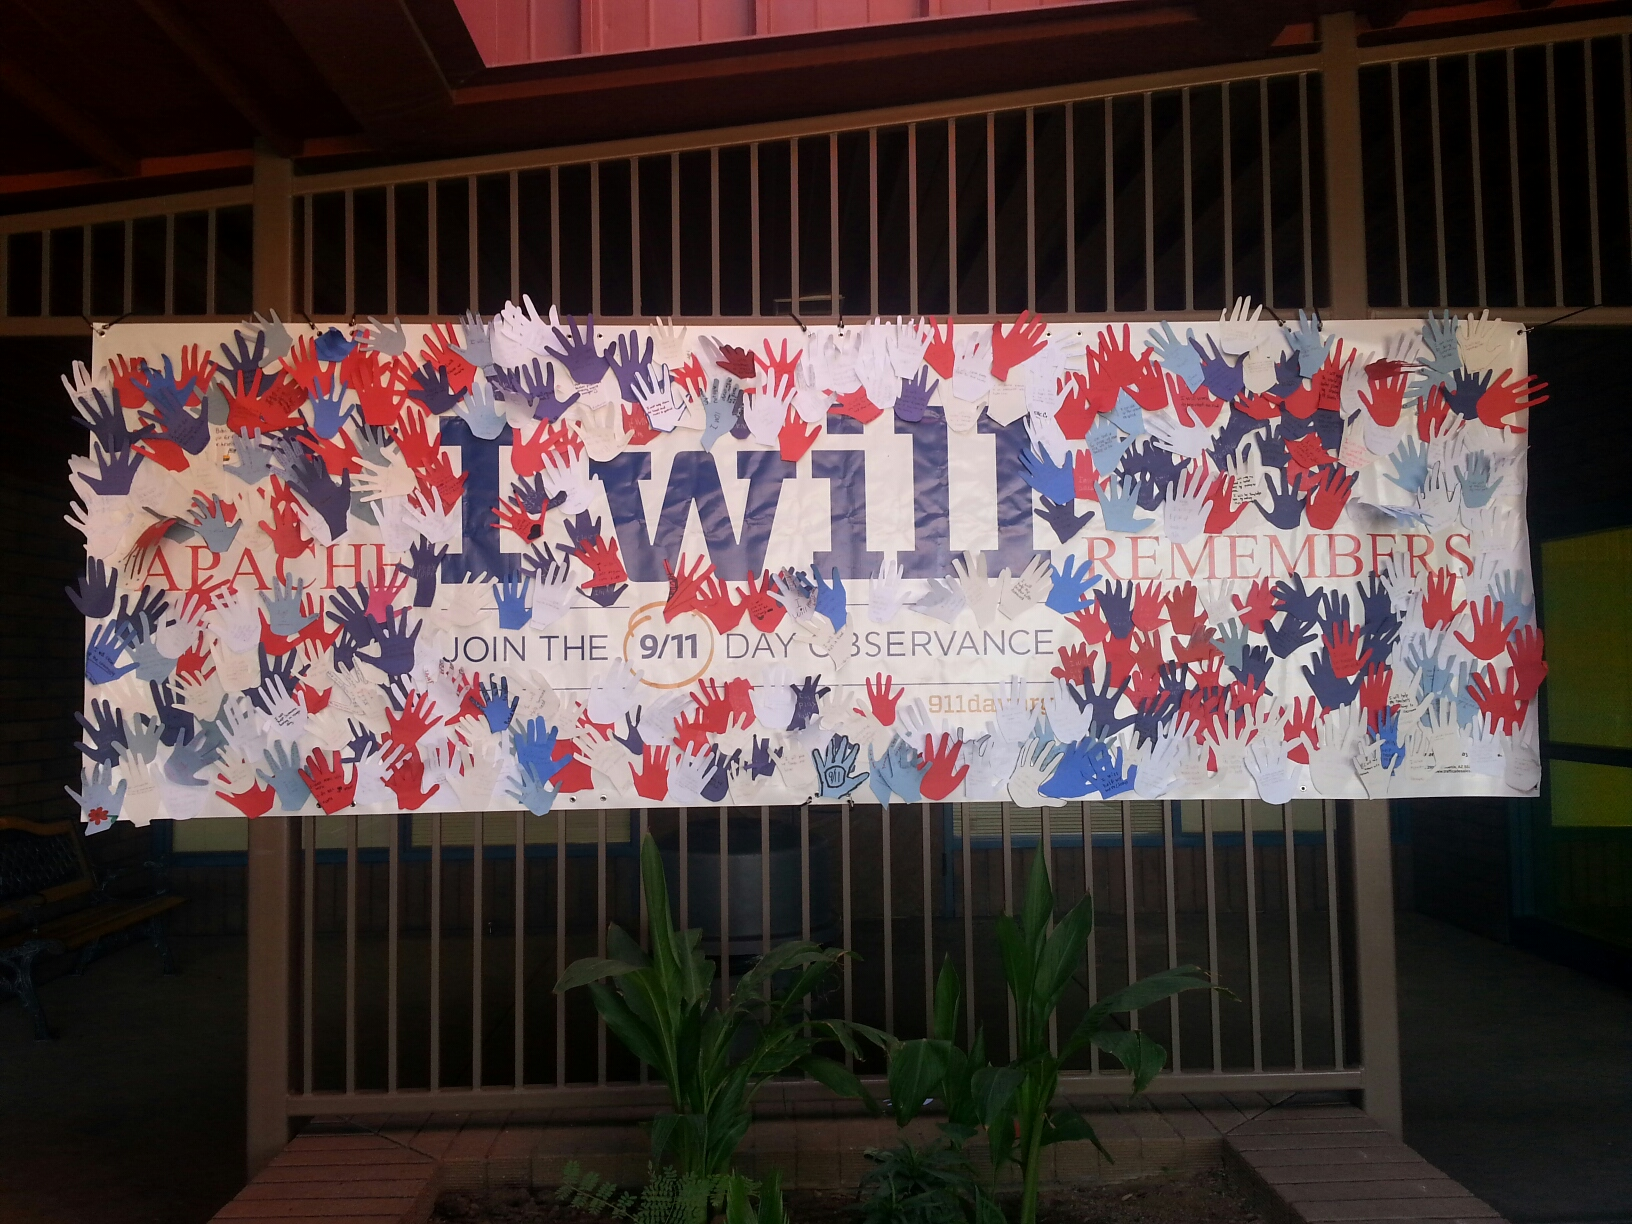 Poster At Apache Elementary School In The Peoria Unified School District In Remembrance Of 9/11. Photo Courtesy Of Peoria Unified School District